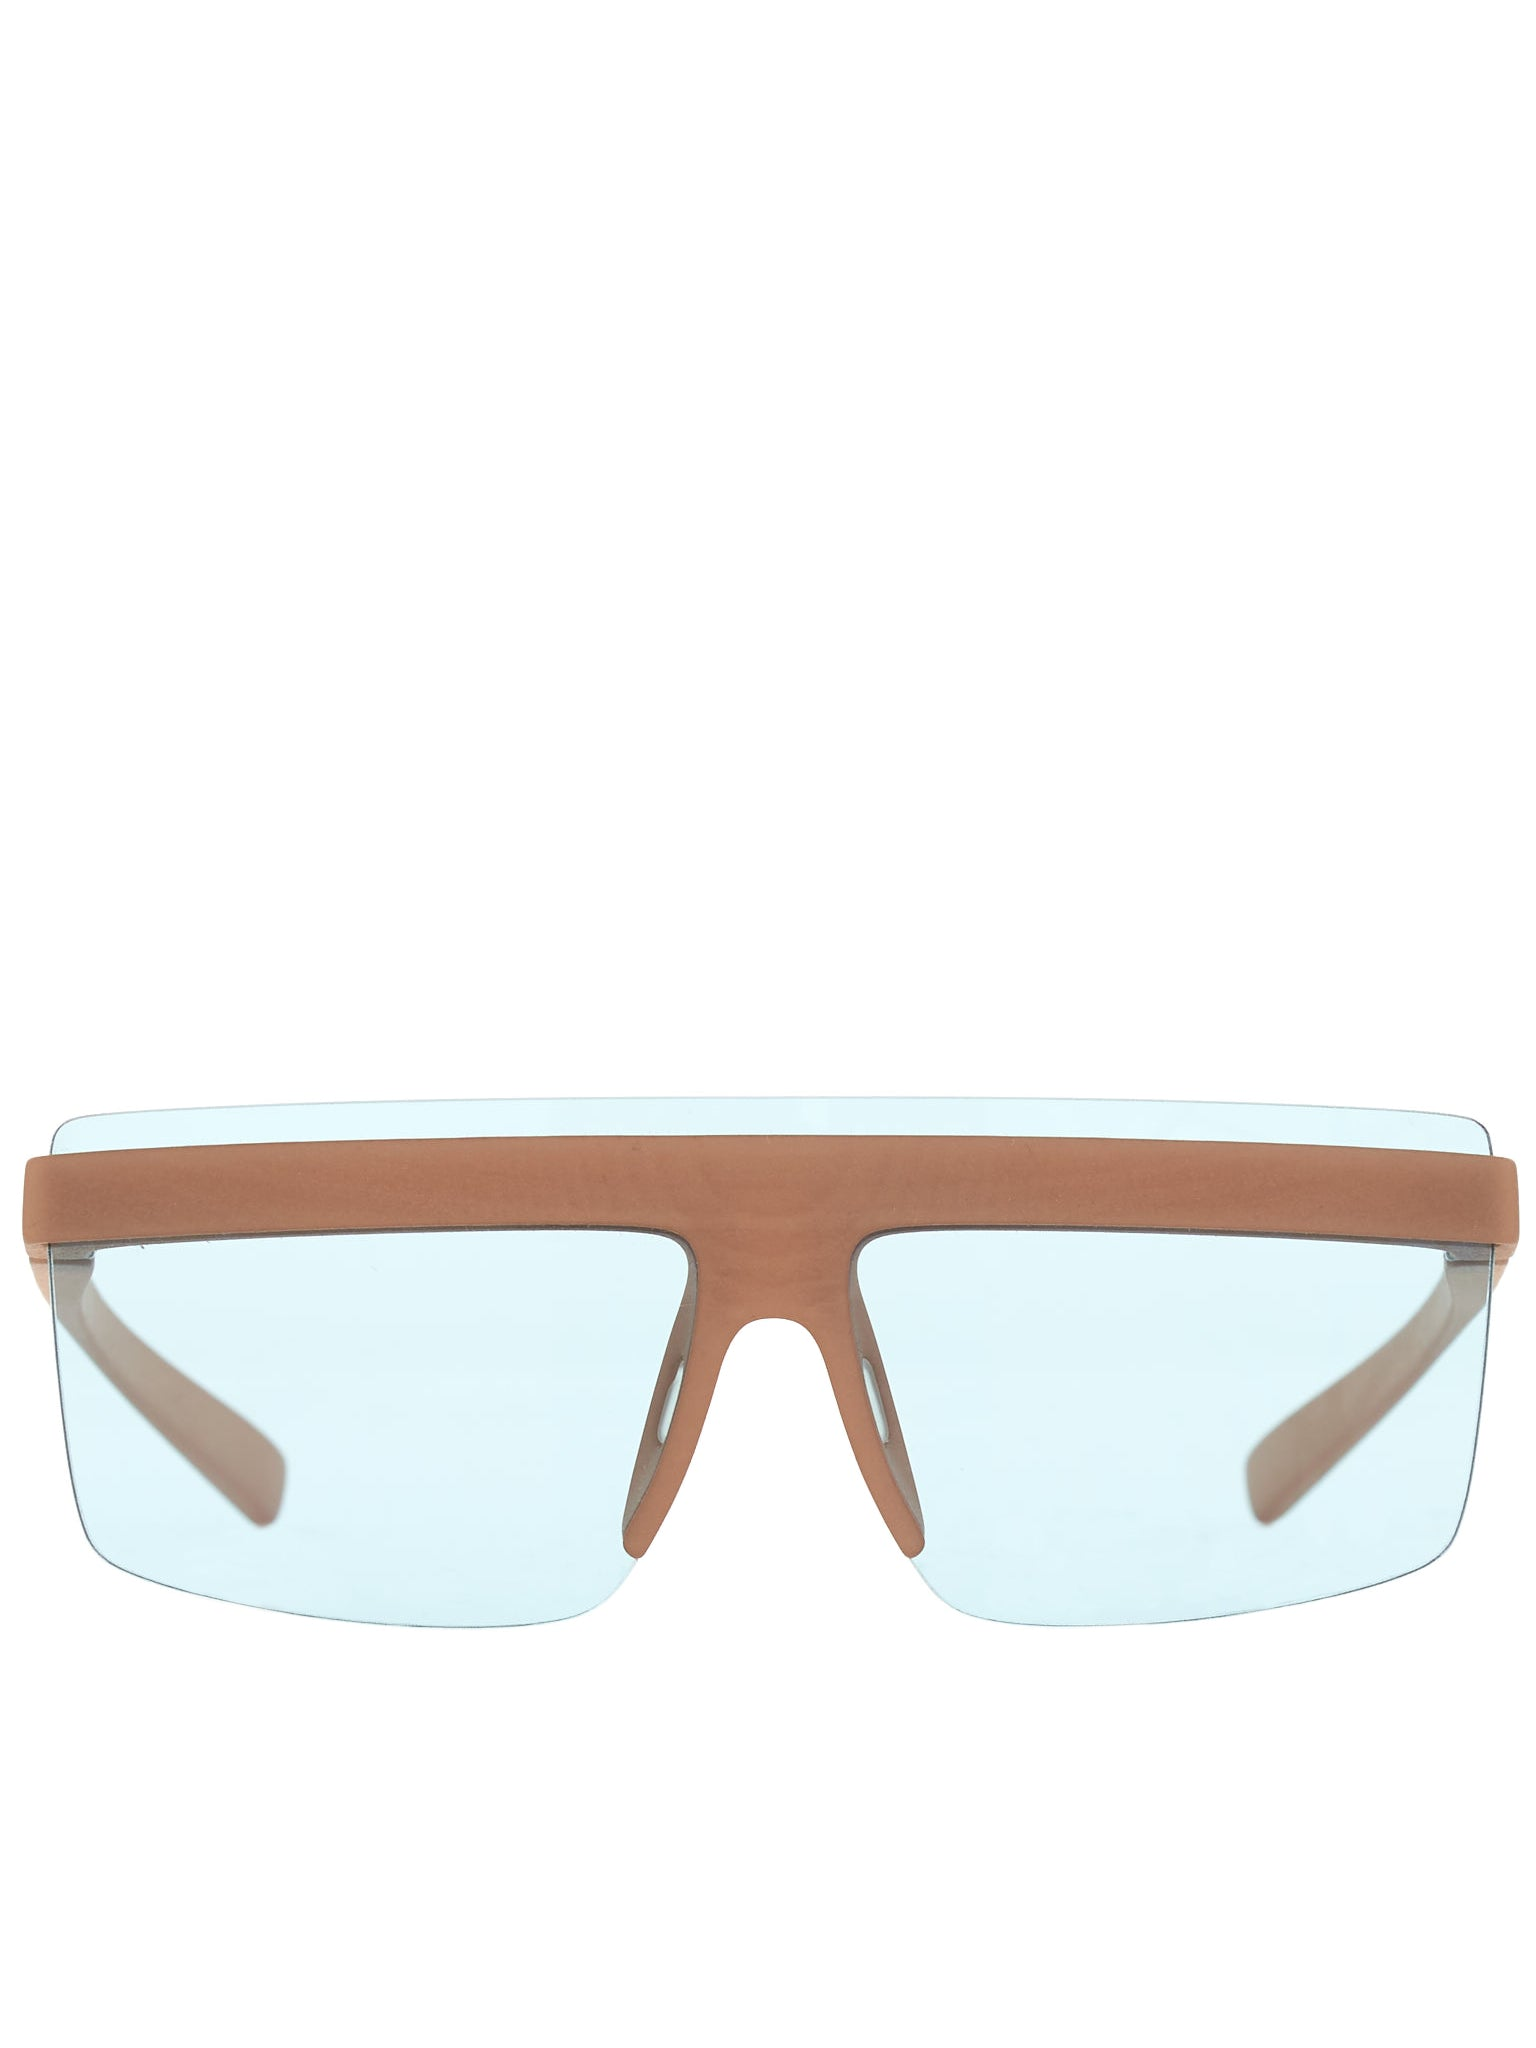 AZ Shield Shades (MMCIRCLE002-MD28-NUDE)